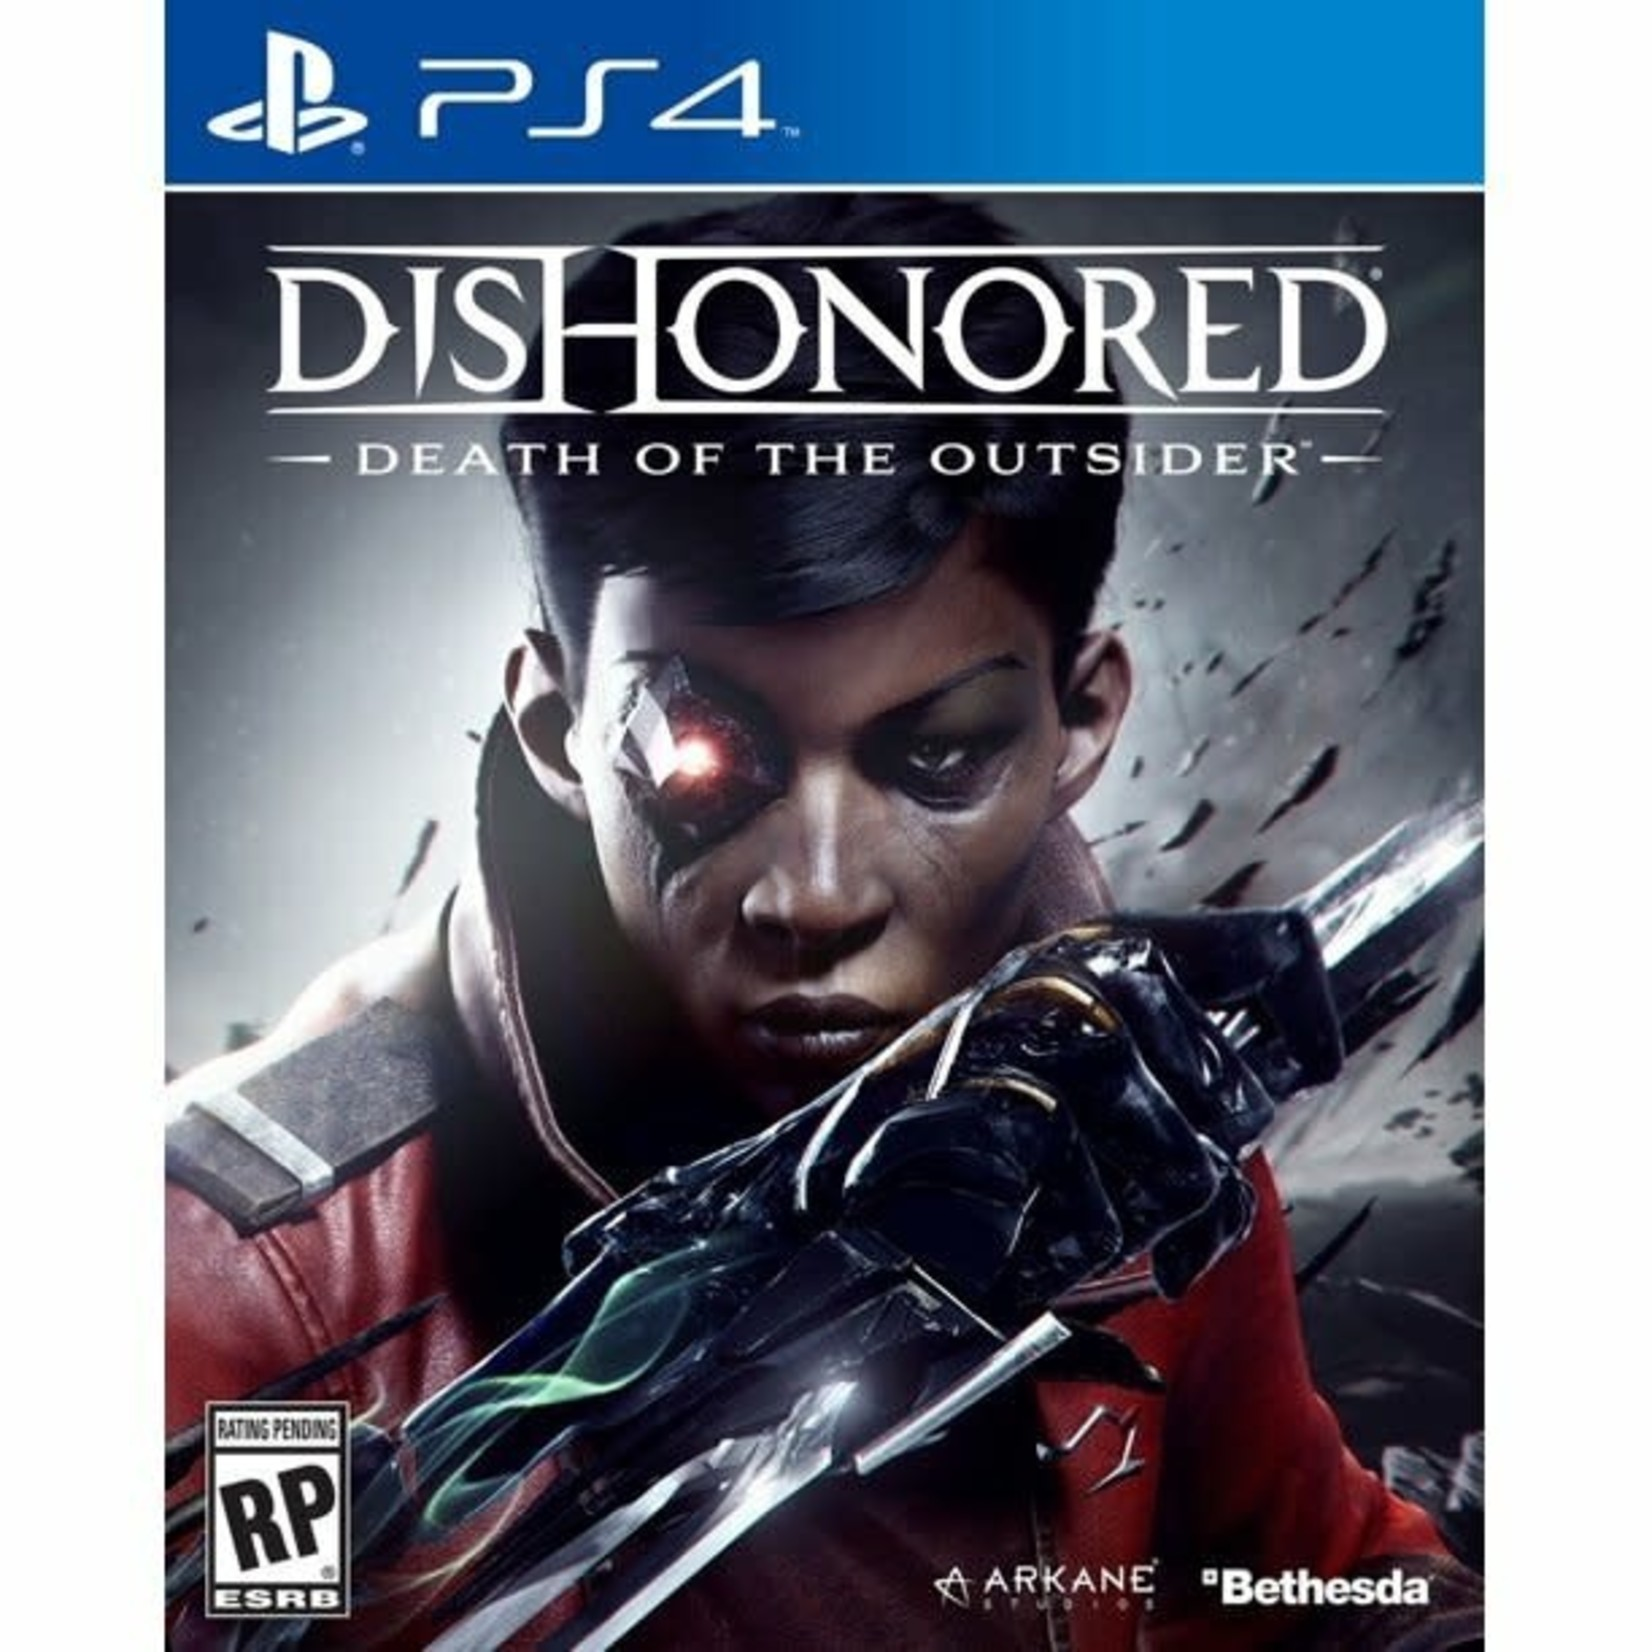 PS4U-Dishonored: Death of the Outsider